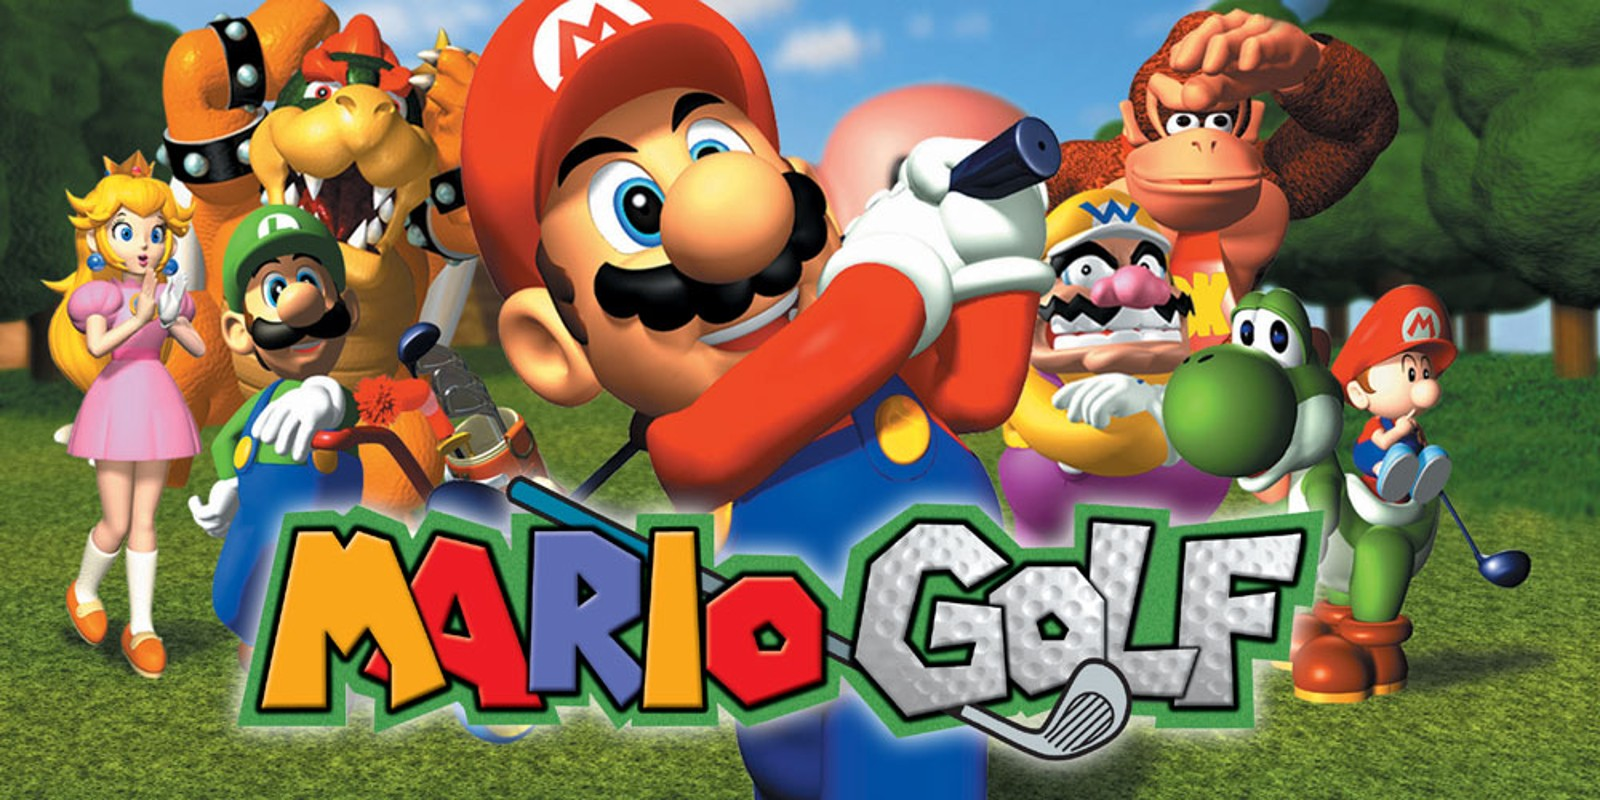 Mario Golf - Best GBA sports games